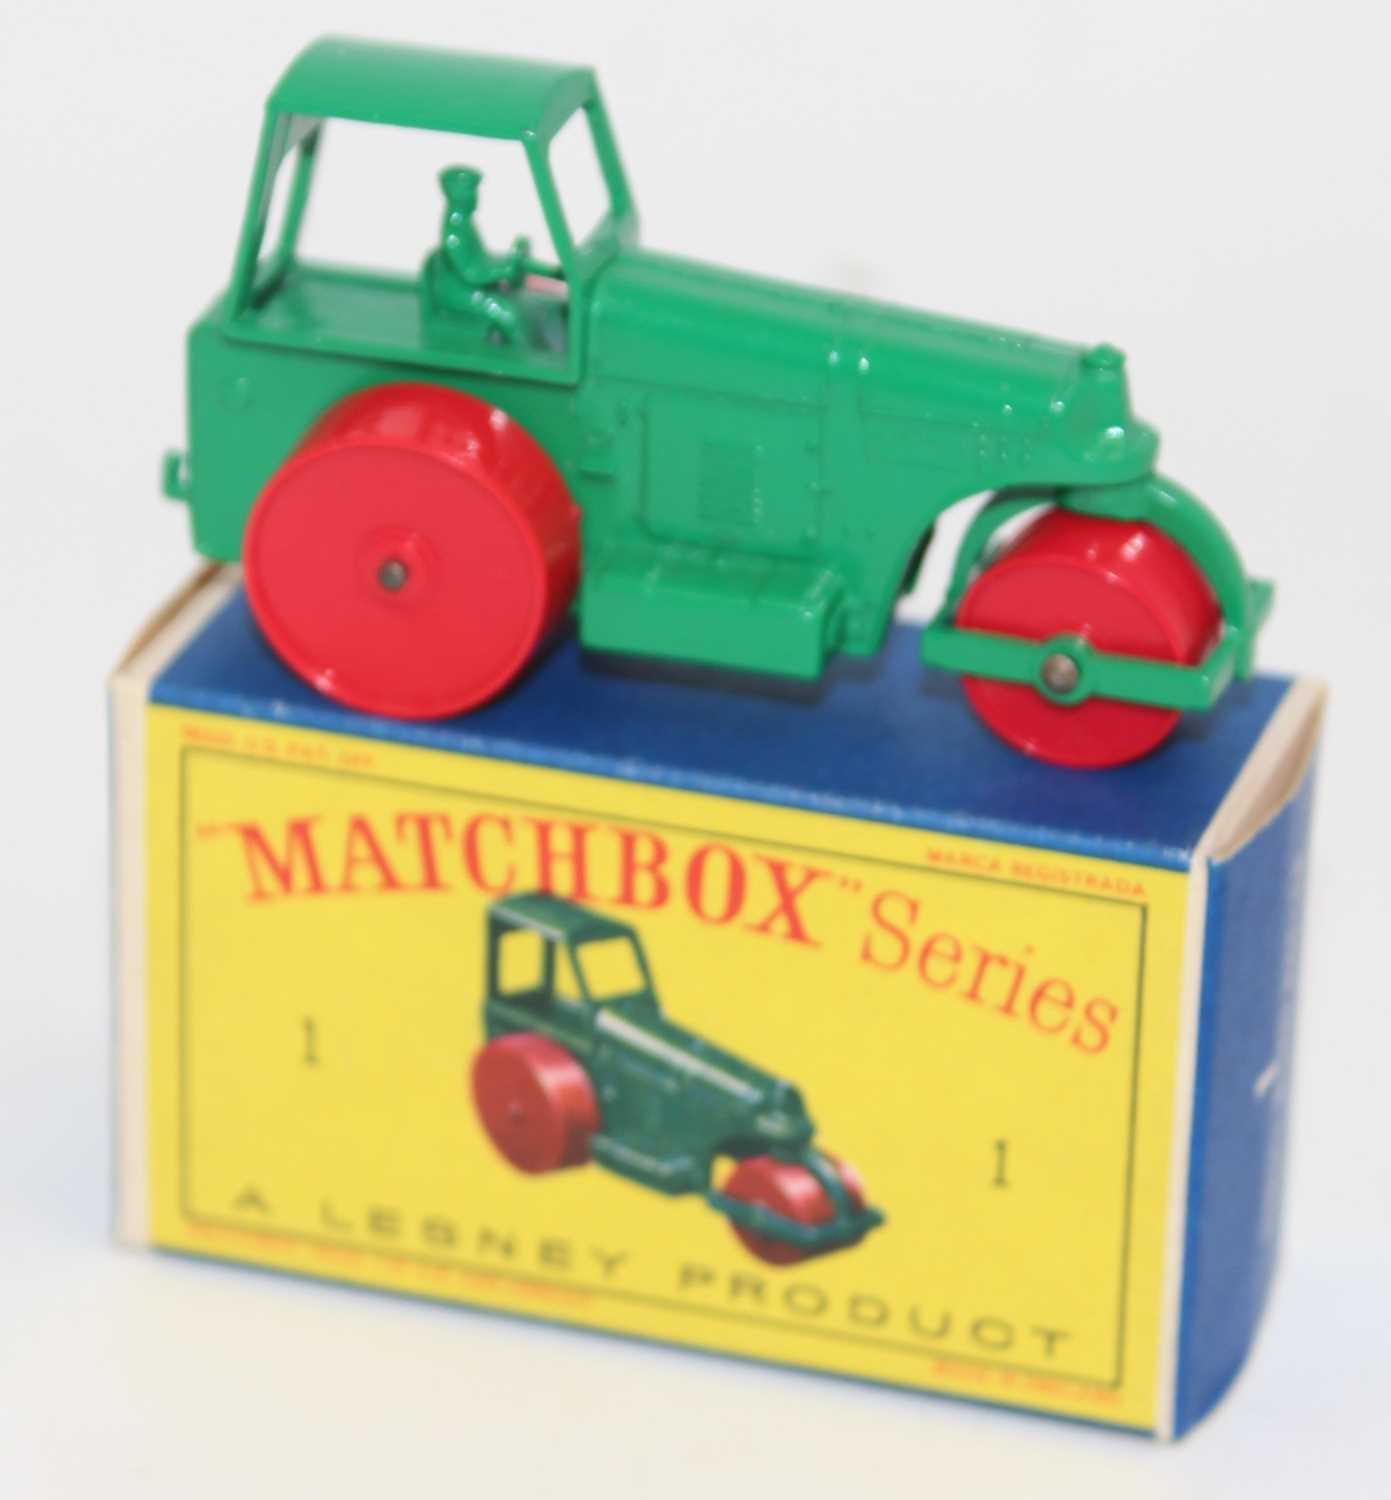 Matchbox, No1 Aveling Barford Diesel road roller, green complete with D box, superb (M-BNM) - Image 2 of 2